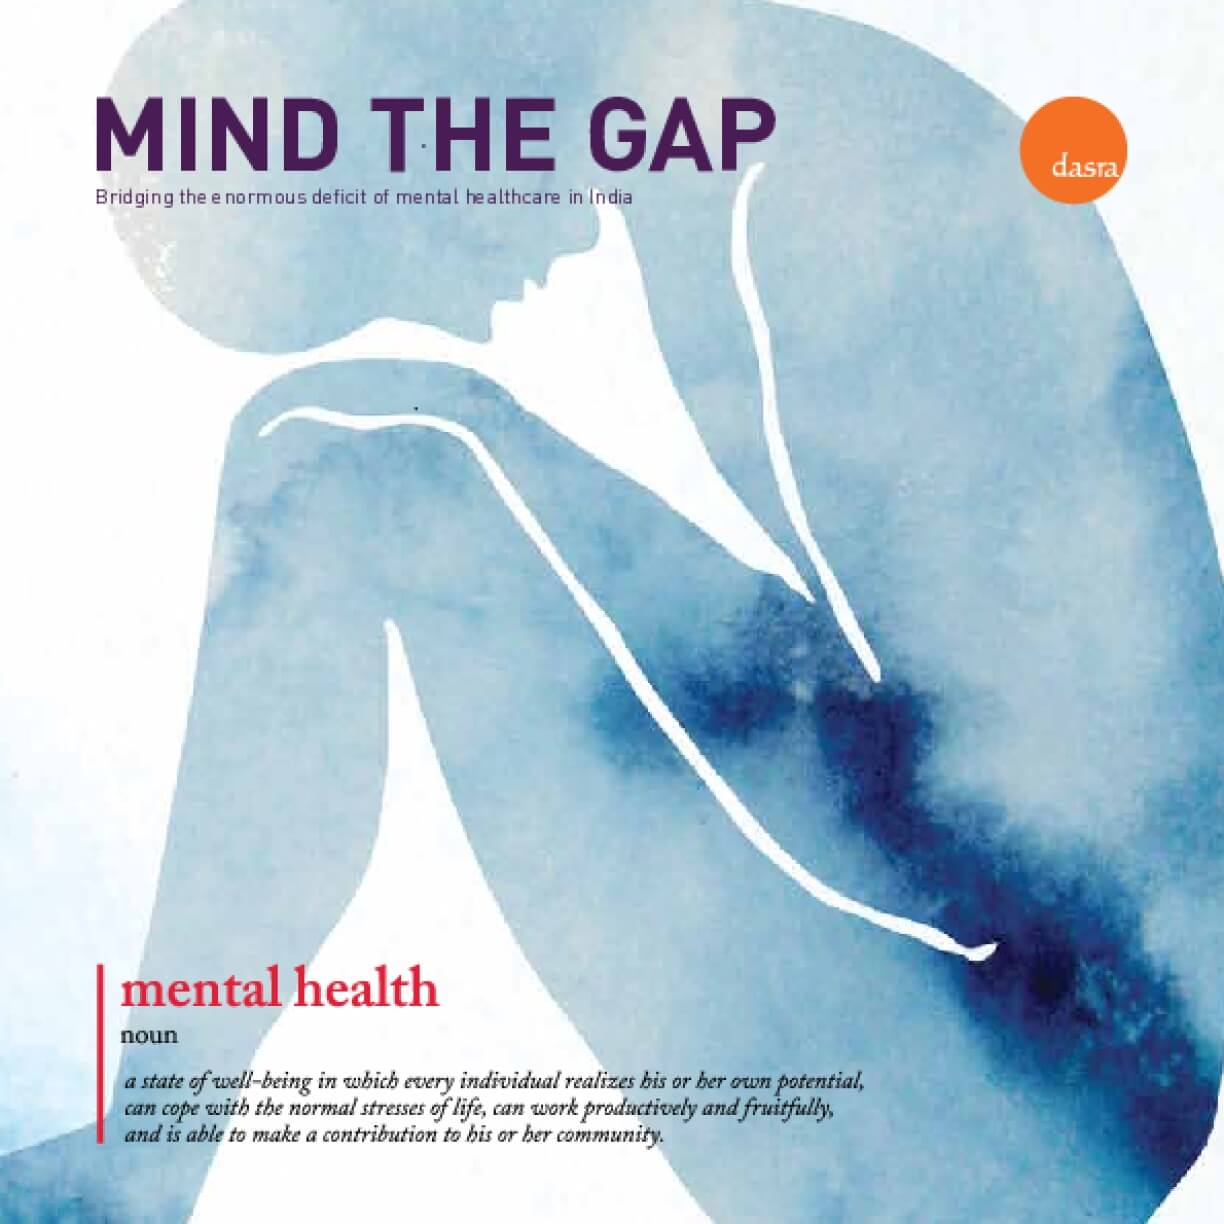 Mind the Gap: Bridging the enormous deficit of mental healthcare in India